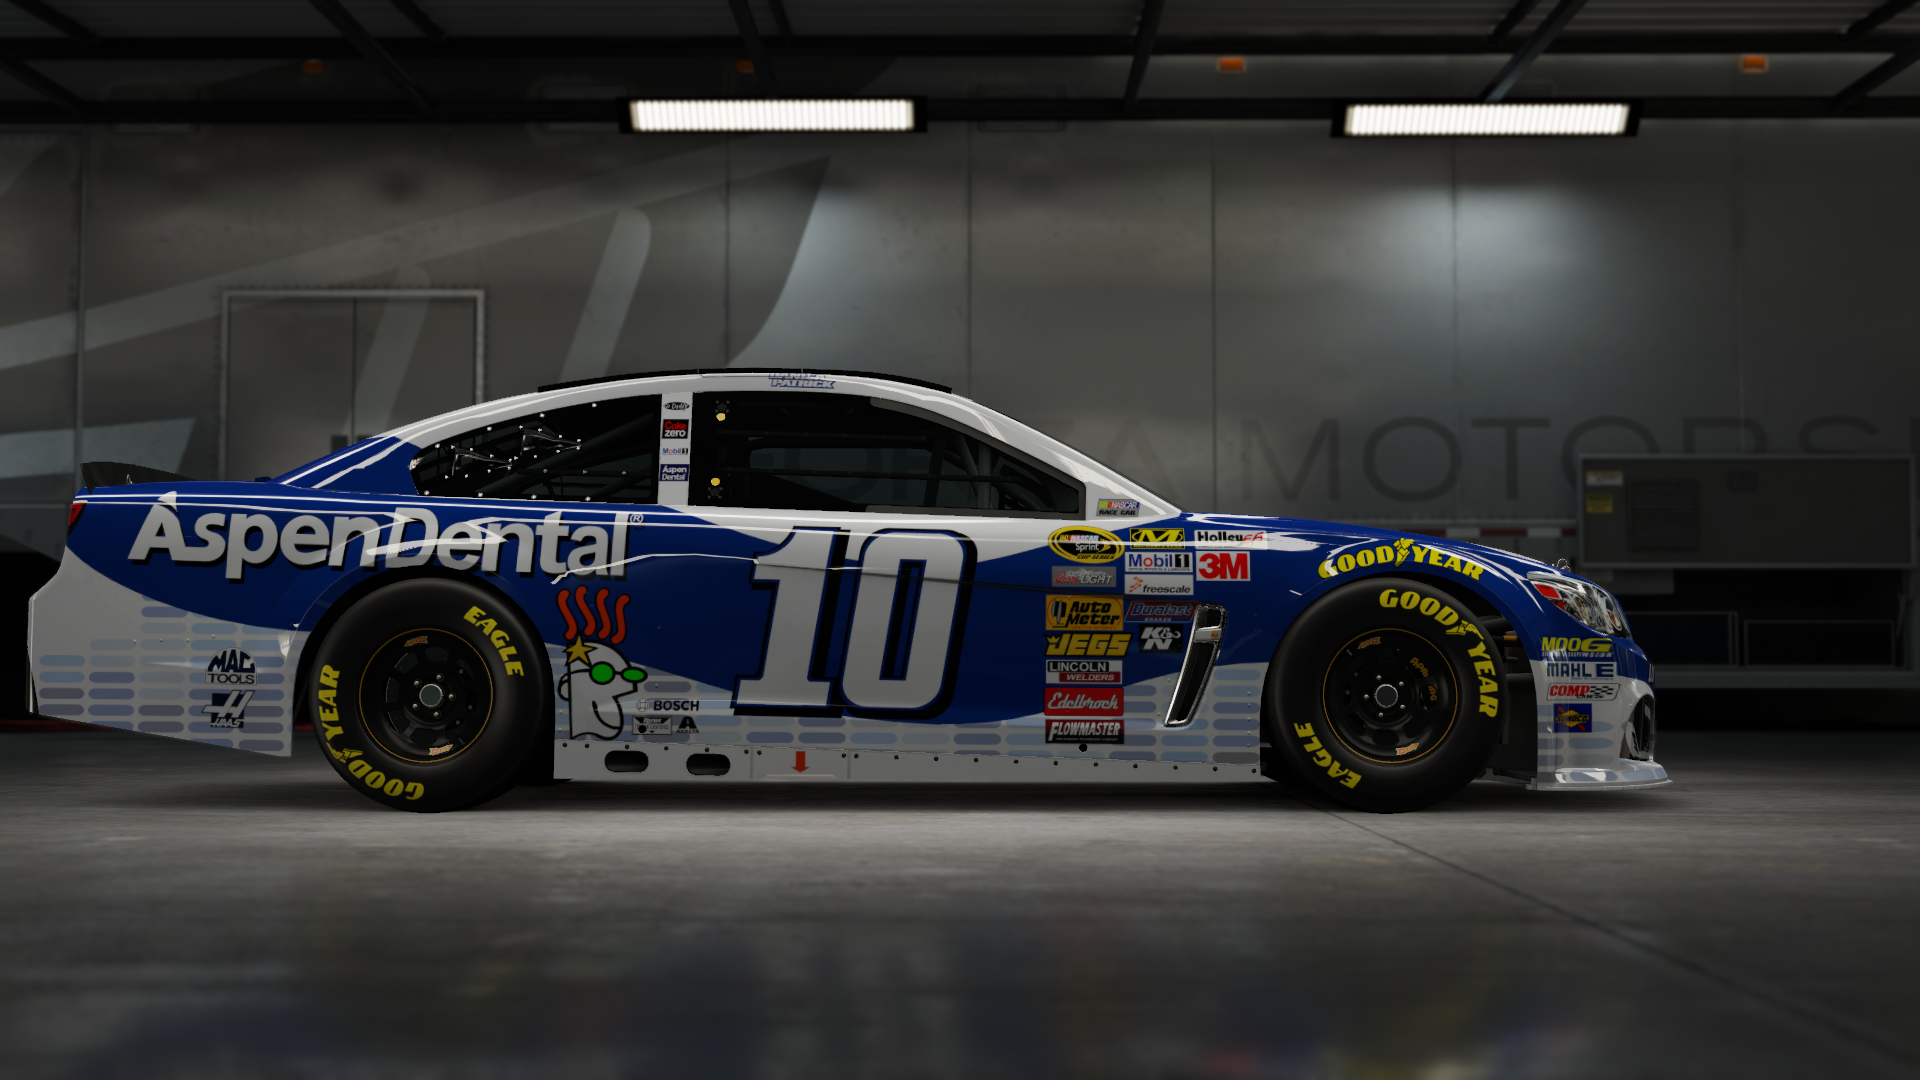 On the #10 Stewart-Haas Racing Nature's Bakery Super Sport, Made by SweedishThunder